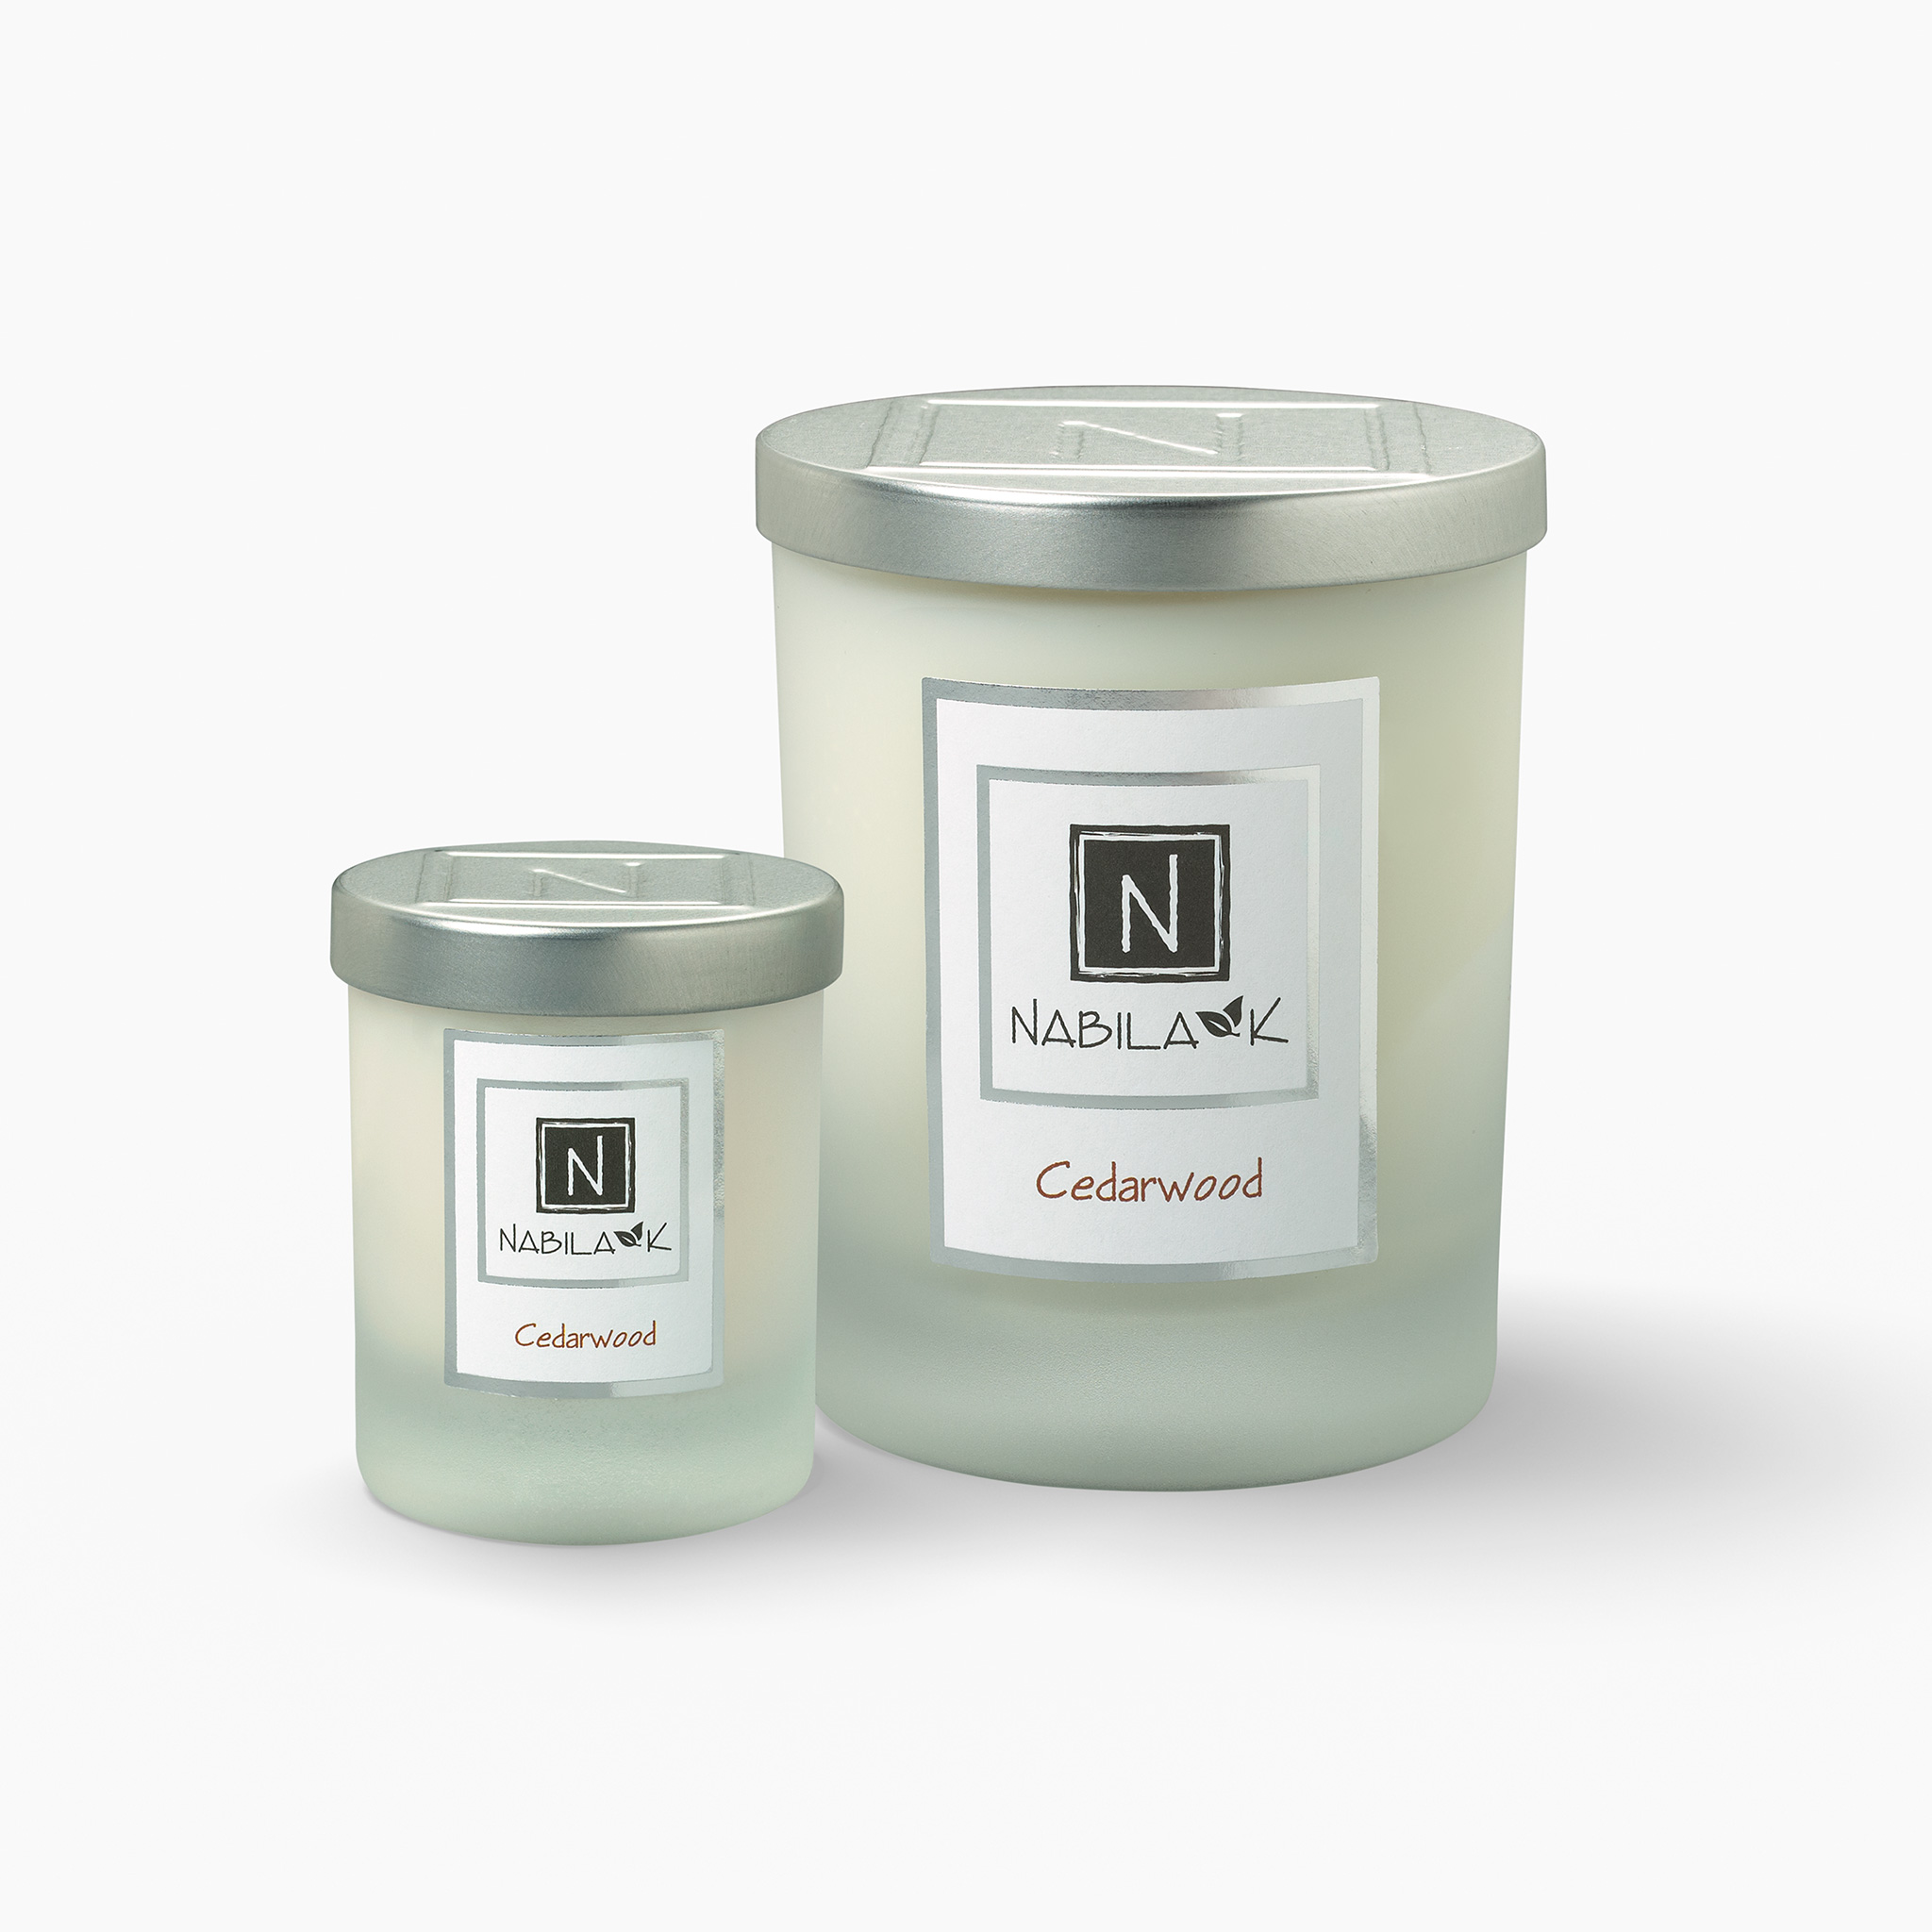 1 Large and 1 Small Version of Nabila K's Cedarwood Candle